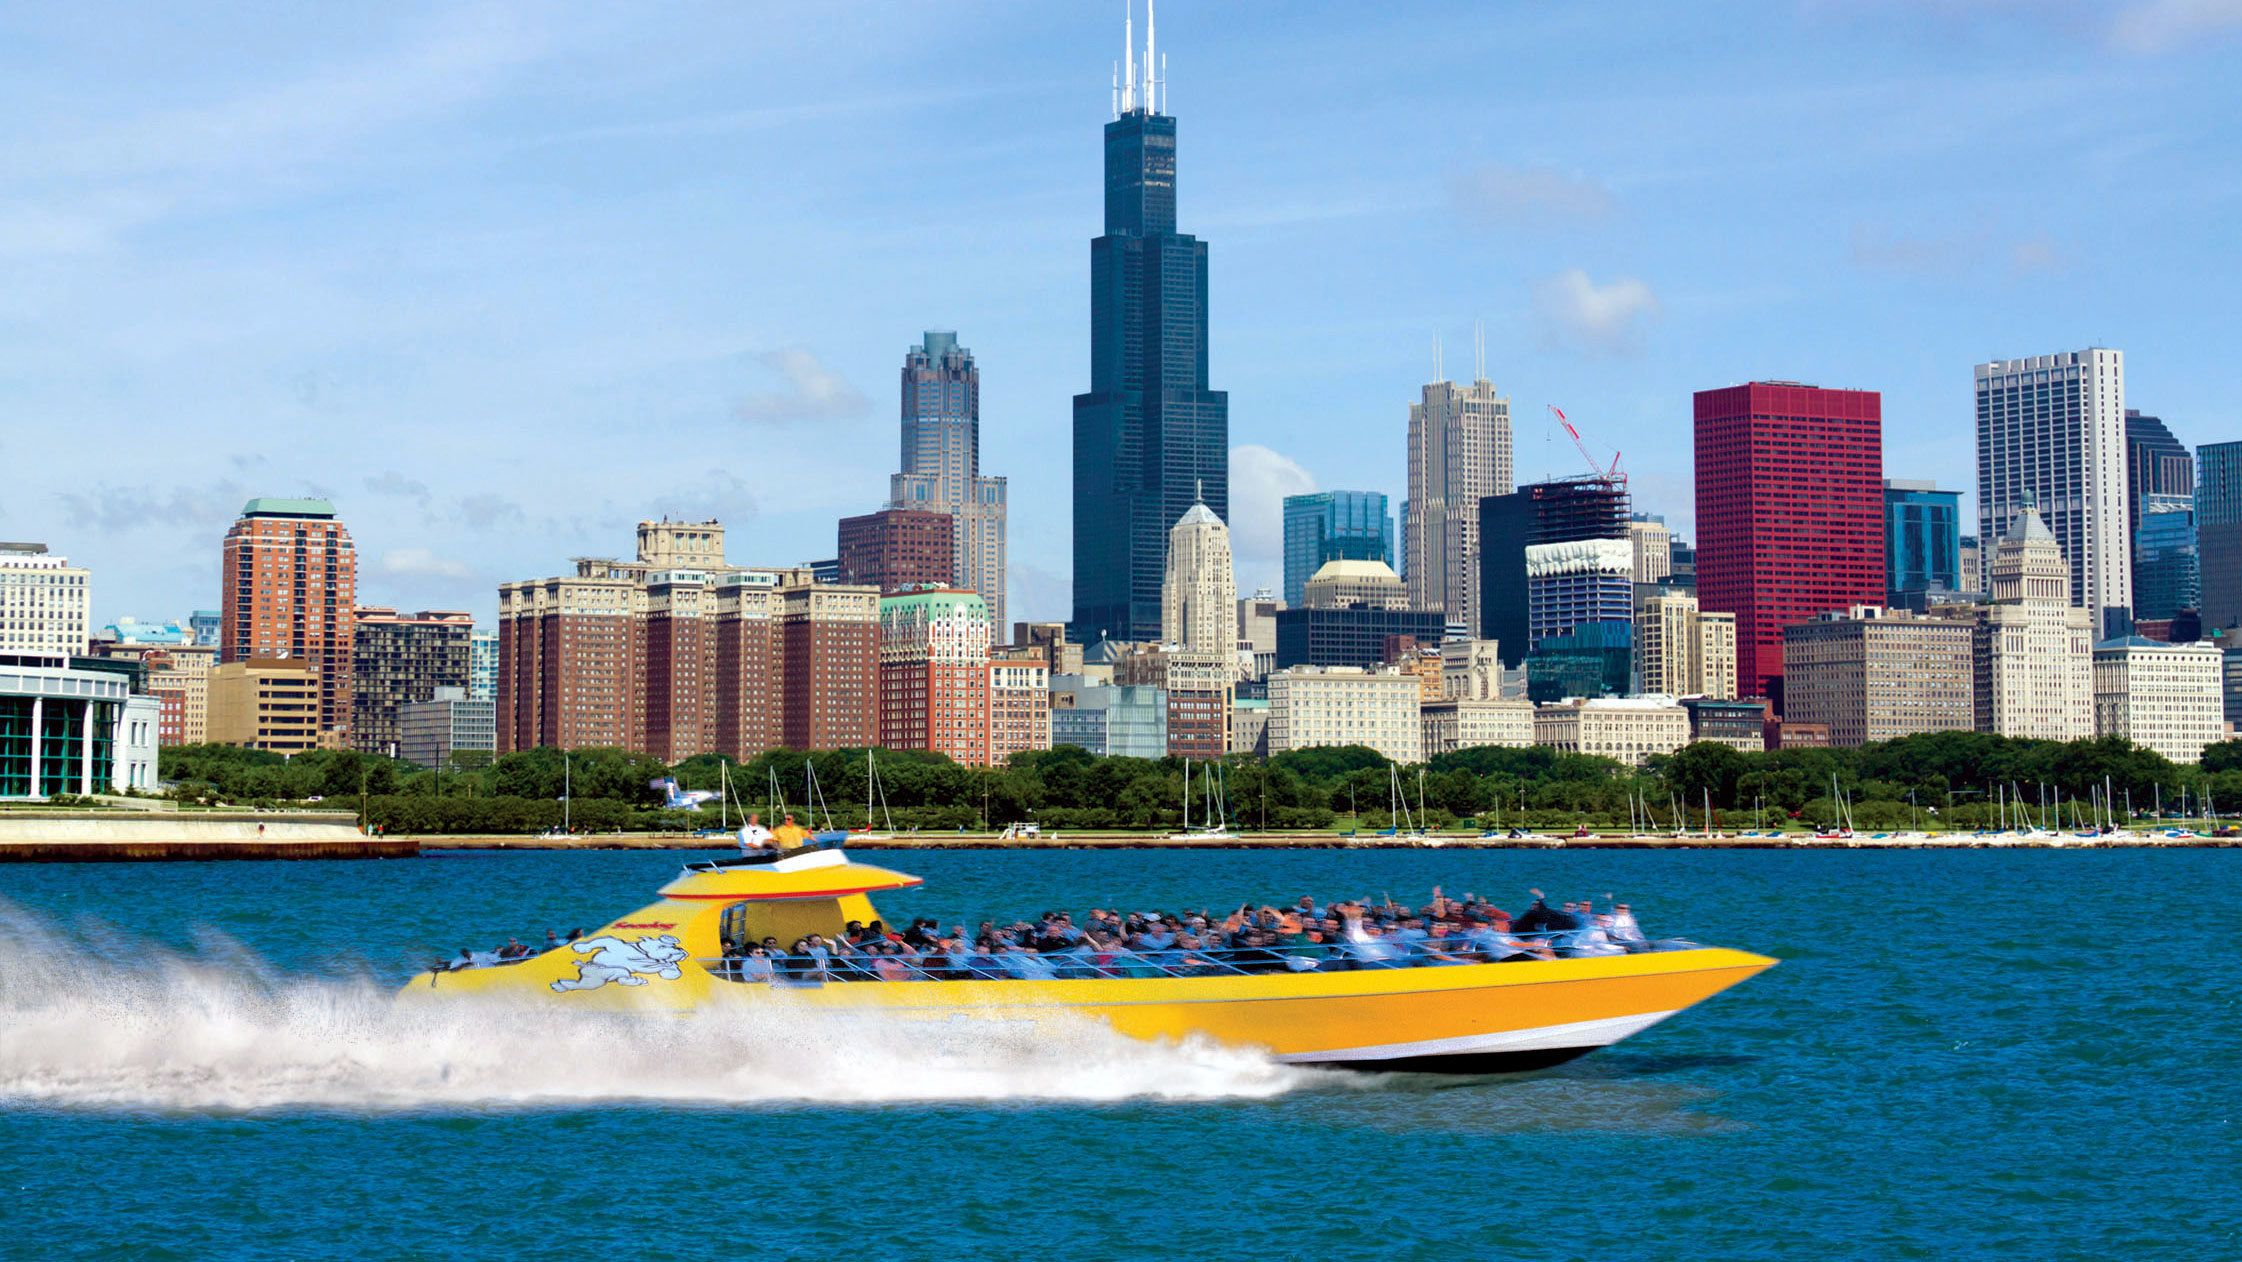 yellow speed boat in the water in chicago